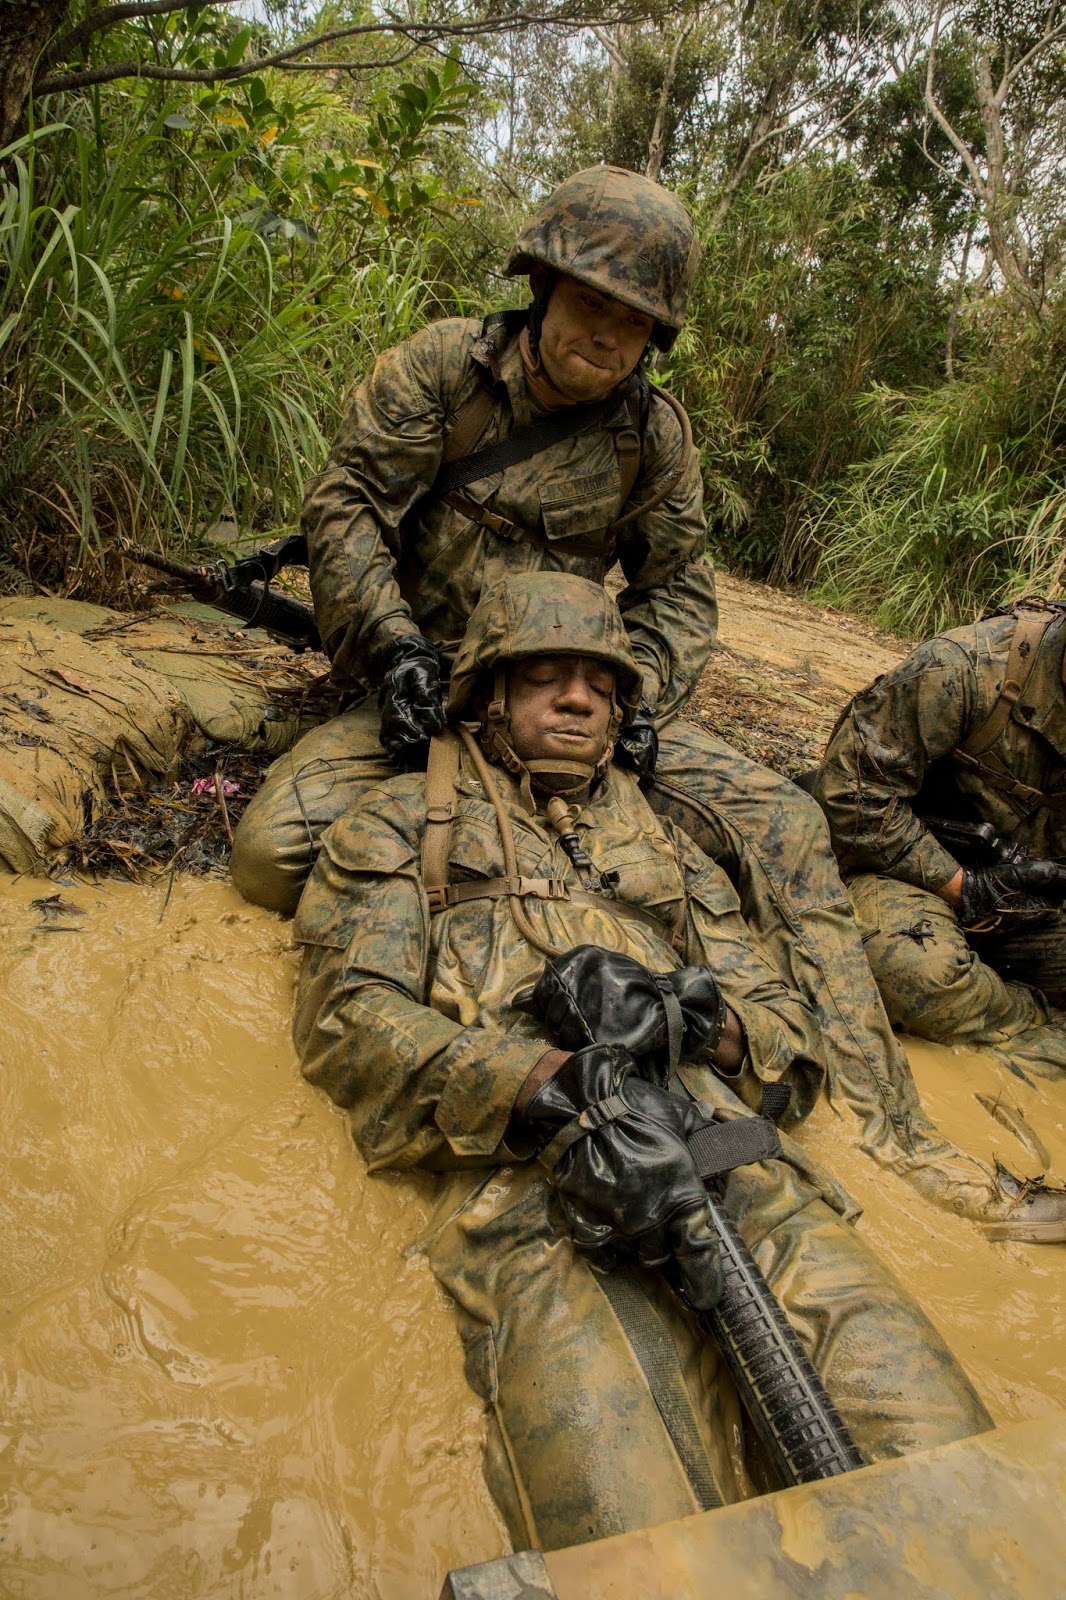 Two men in military gear. One is pulling the other out of a dirty river onto a muddy bank.